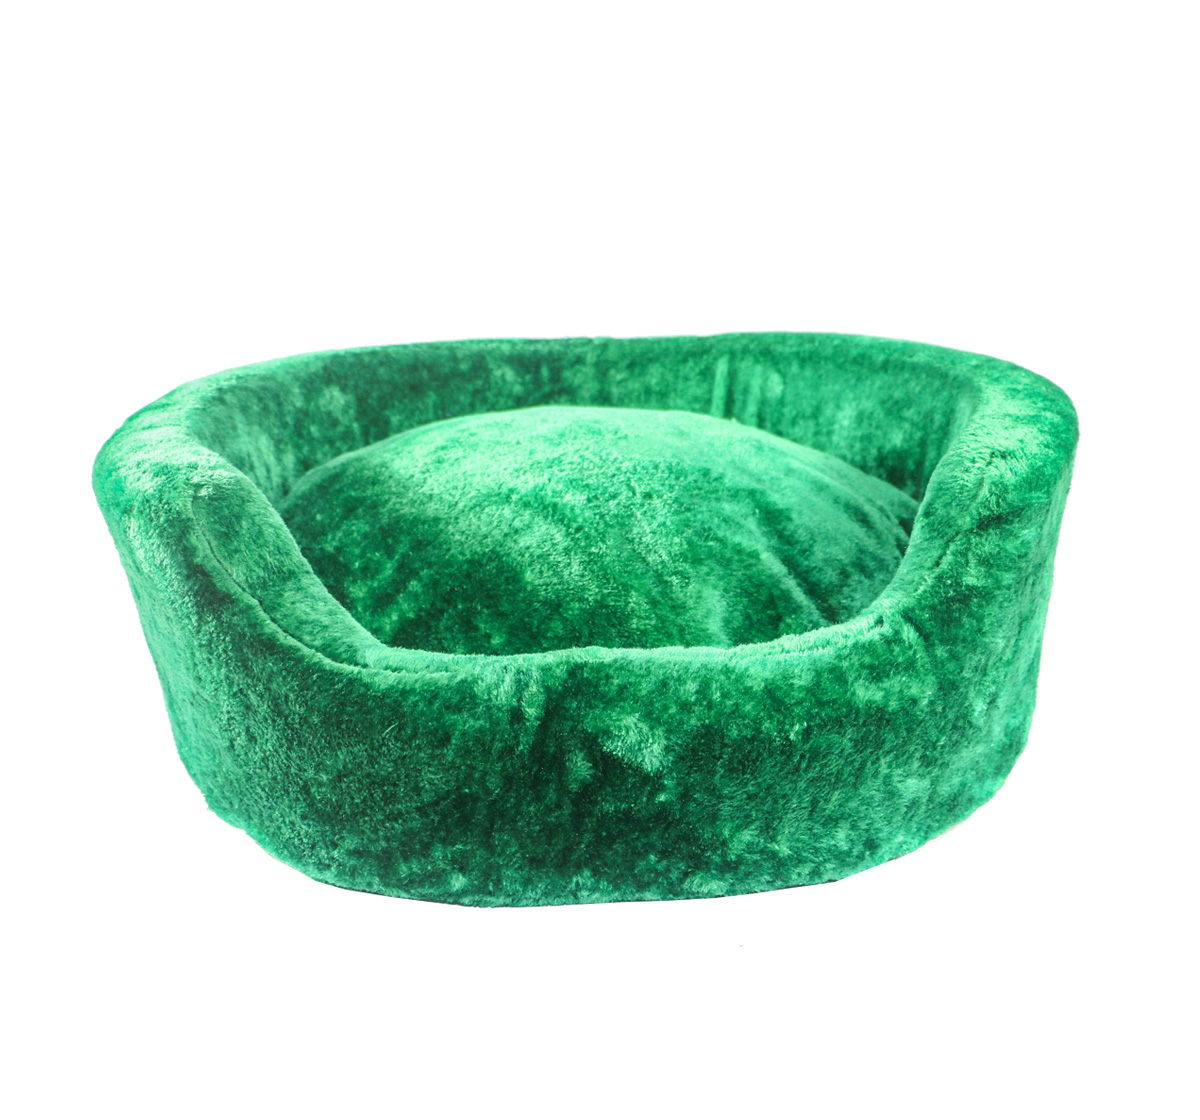 DogSpot Luxury Velour Basket Bed Emerald - Small -  24 Inches